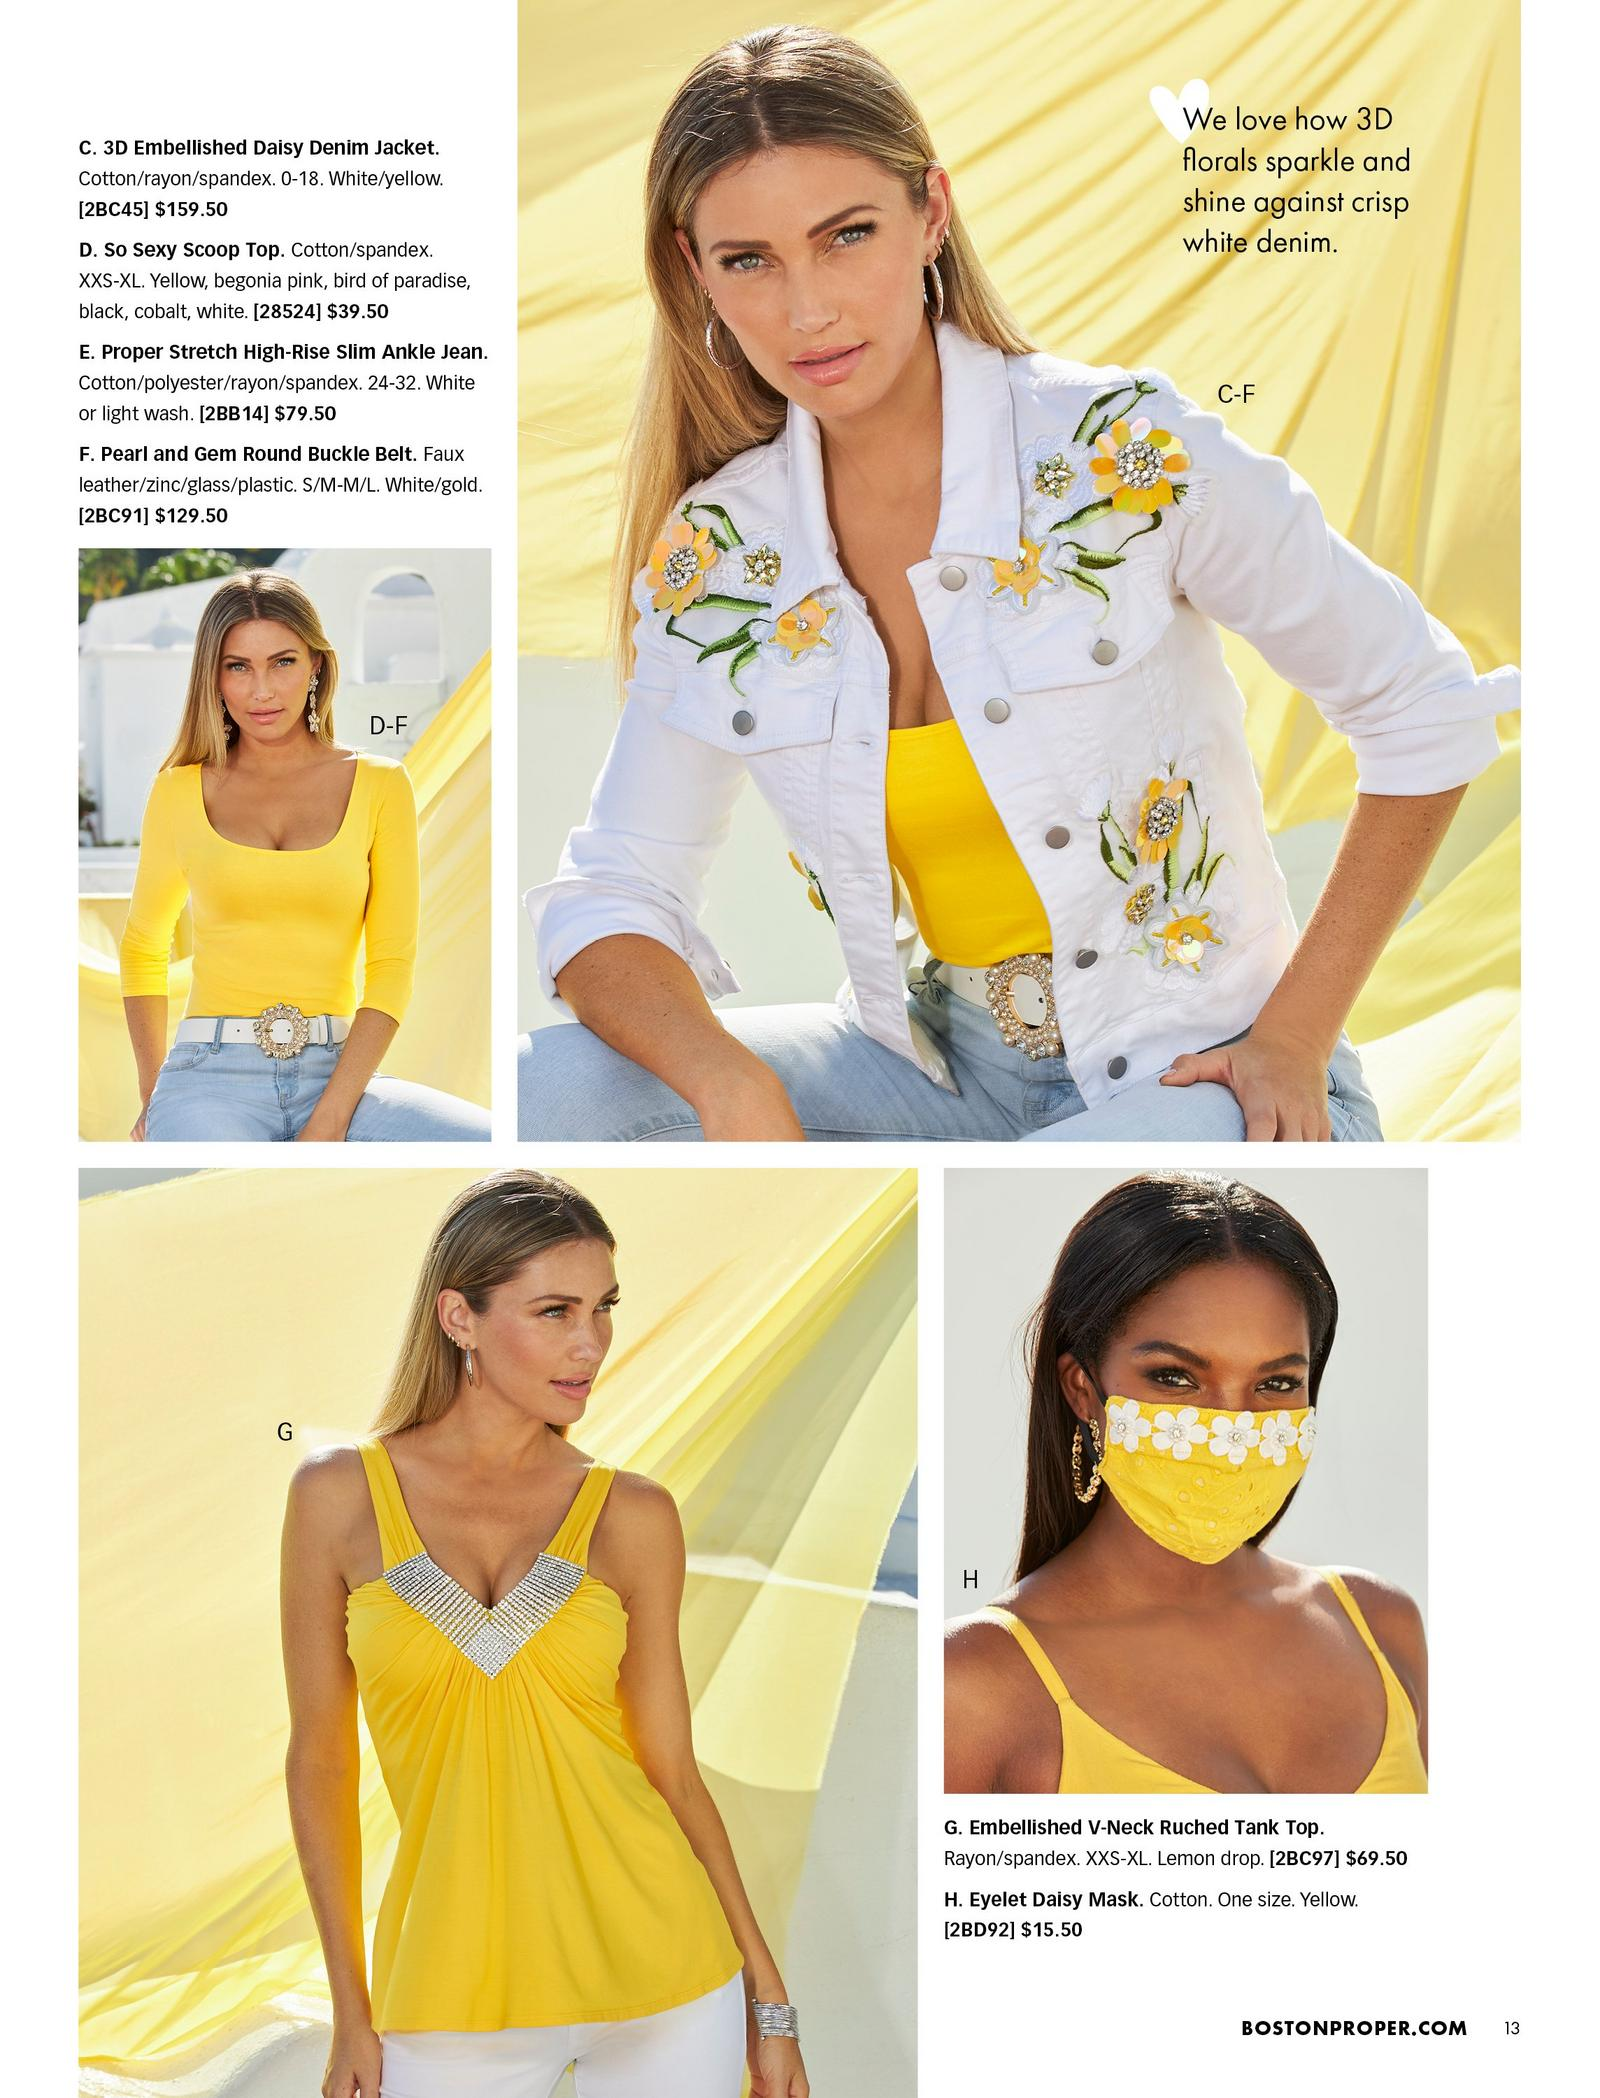 top left model wearing a yellow three-quarter sleeve top, white jeweled belt, and jeans. top right model wearing a white denim jacket with yellow daisy embellishments, yellow top, white jeweled belt, and jeans. bottom left model wearing a yellow sleeveless ruched tank top with silver embellishments. bottom right model wearing a yellow face mask with white daisy embellishments.